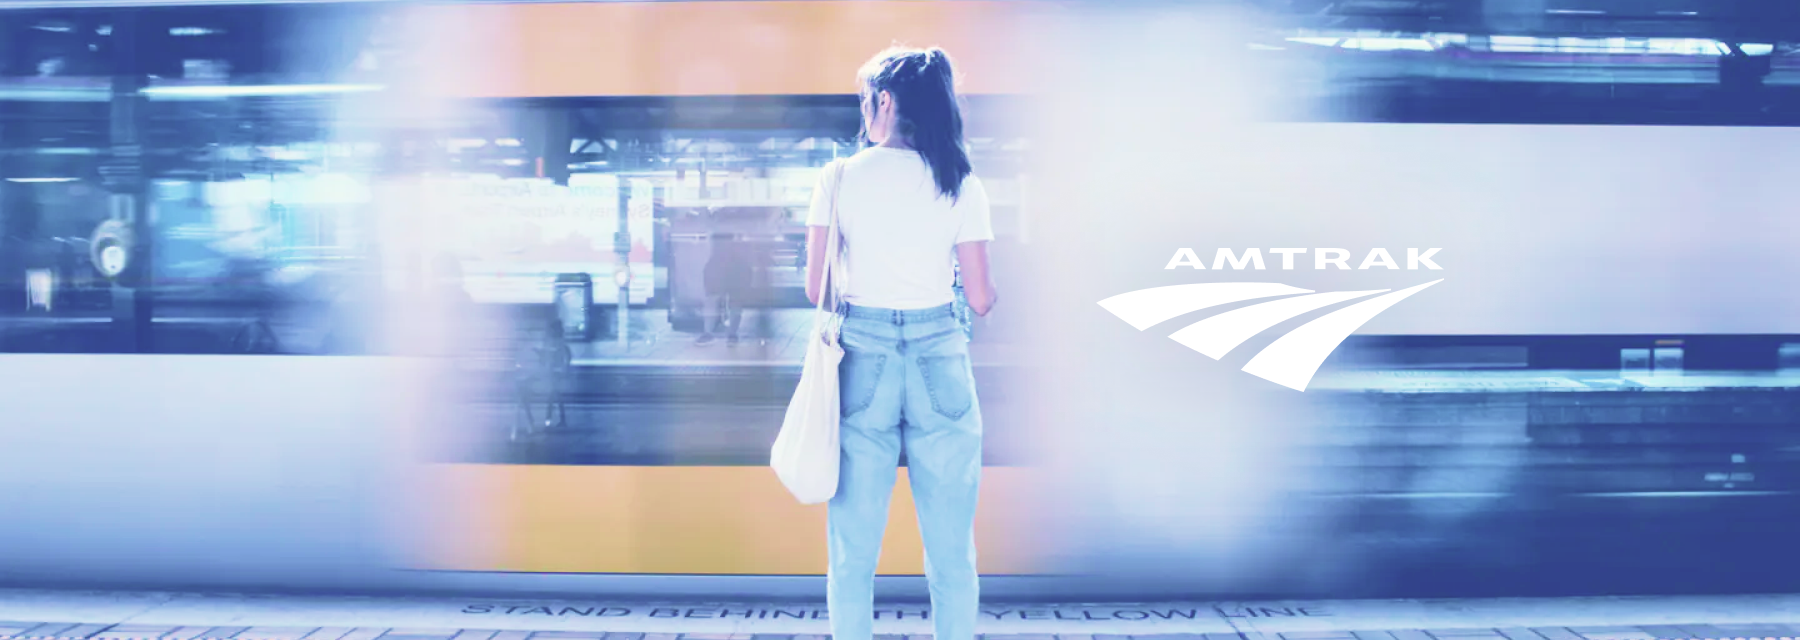 Woman standing in front of passing train with Amtrak logo next to her